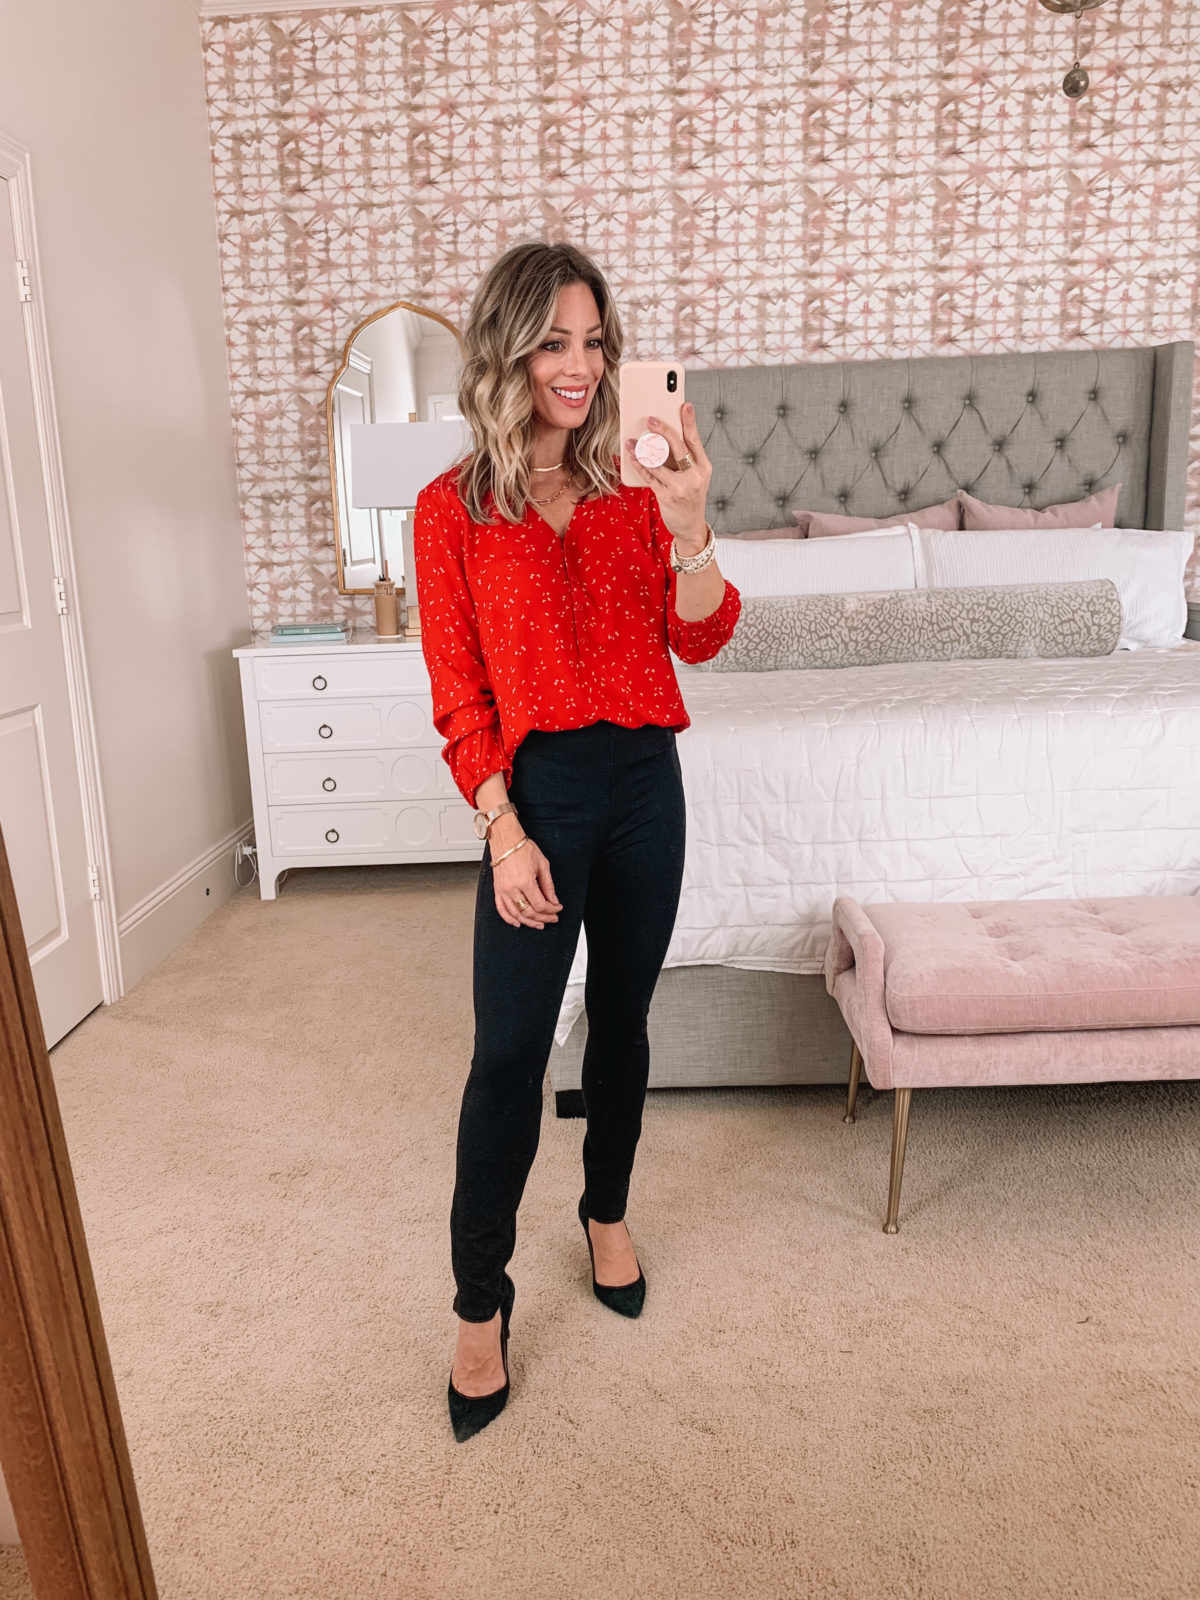 Amazon Fashion Faves, Red Blouse, Black Pants, heels